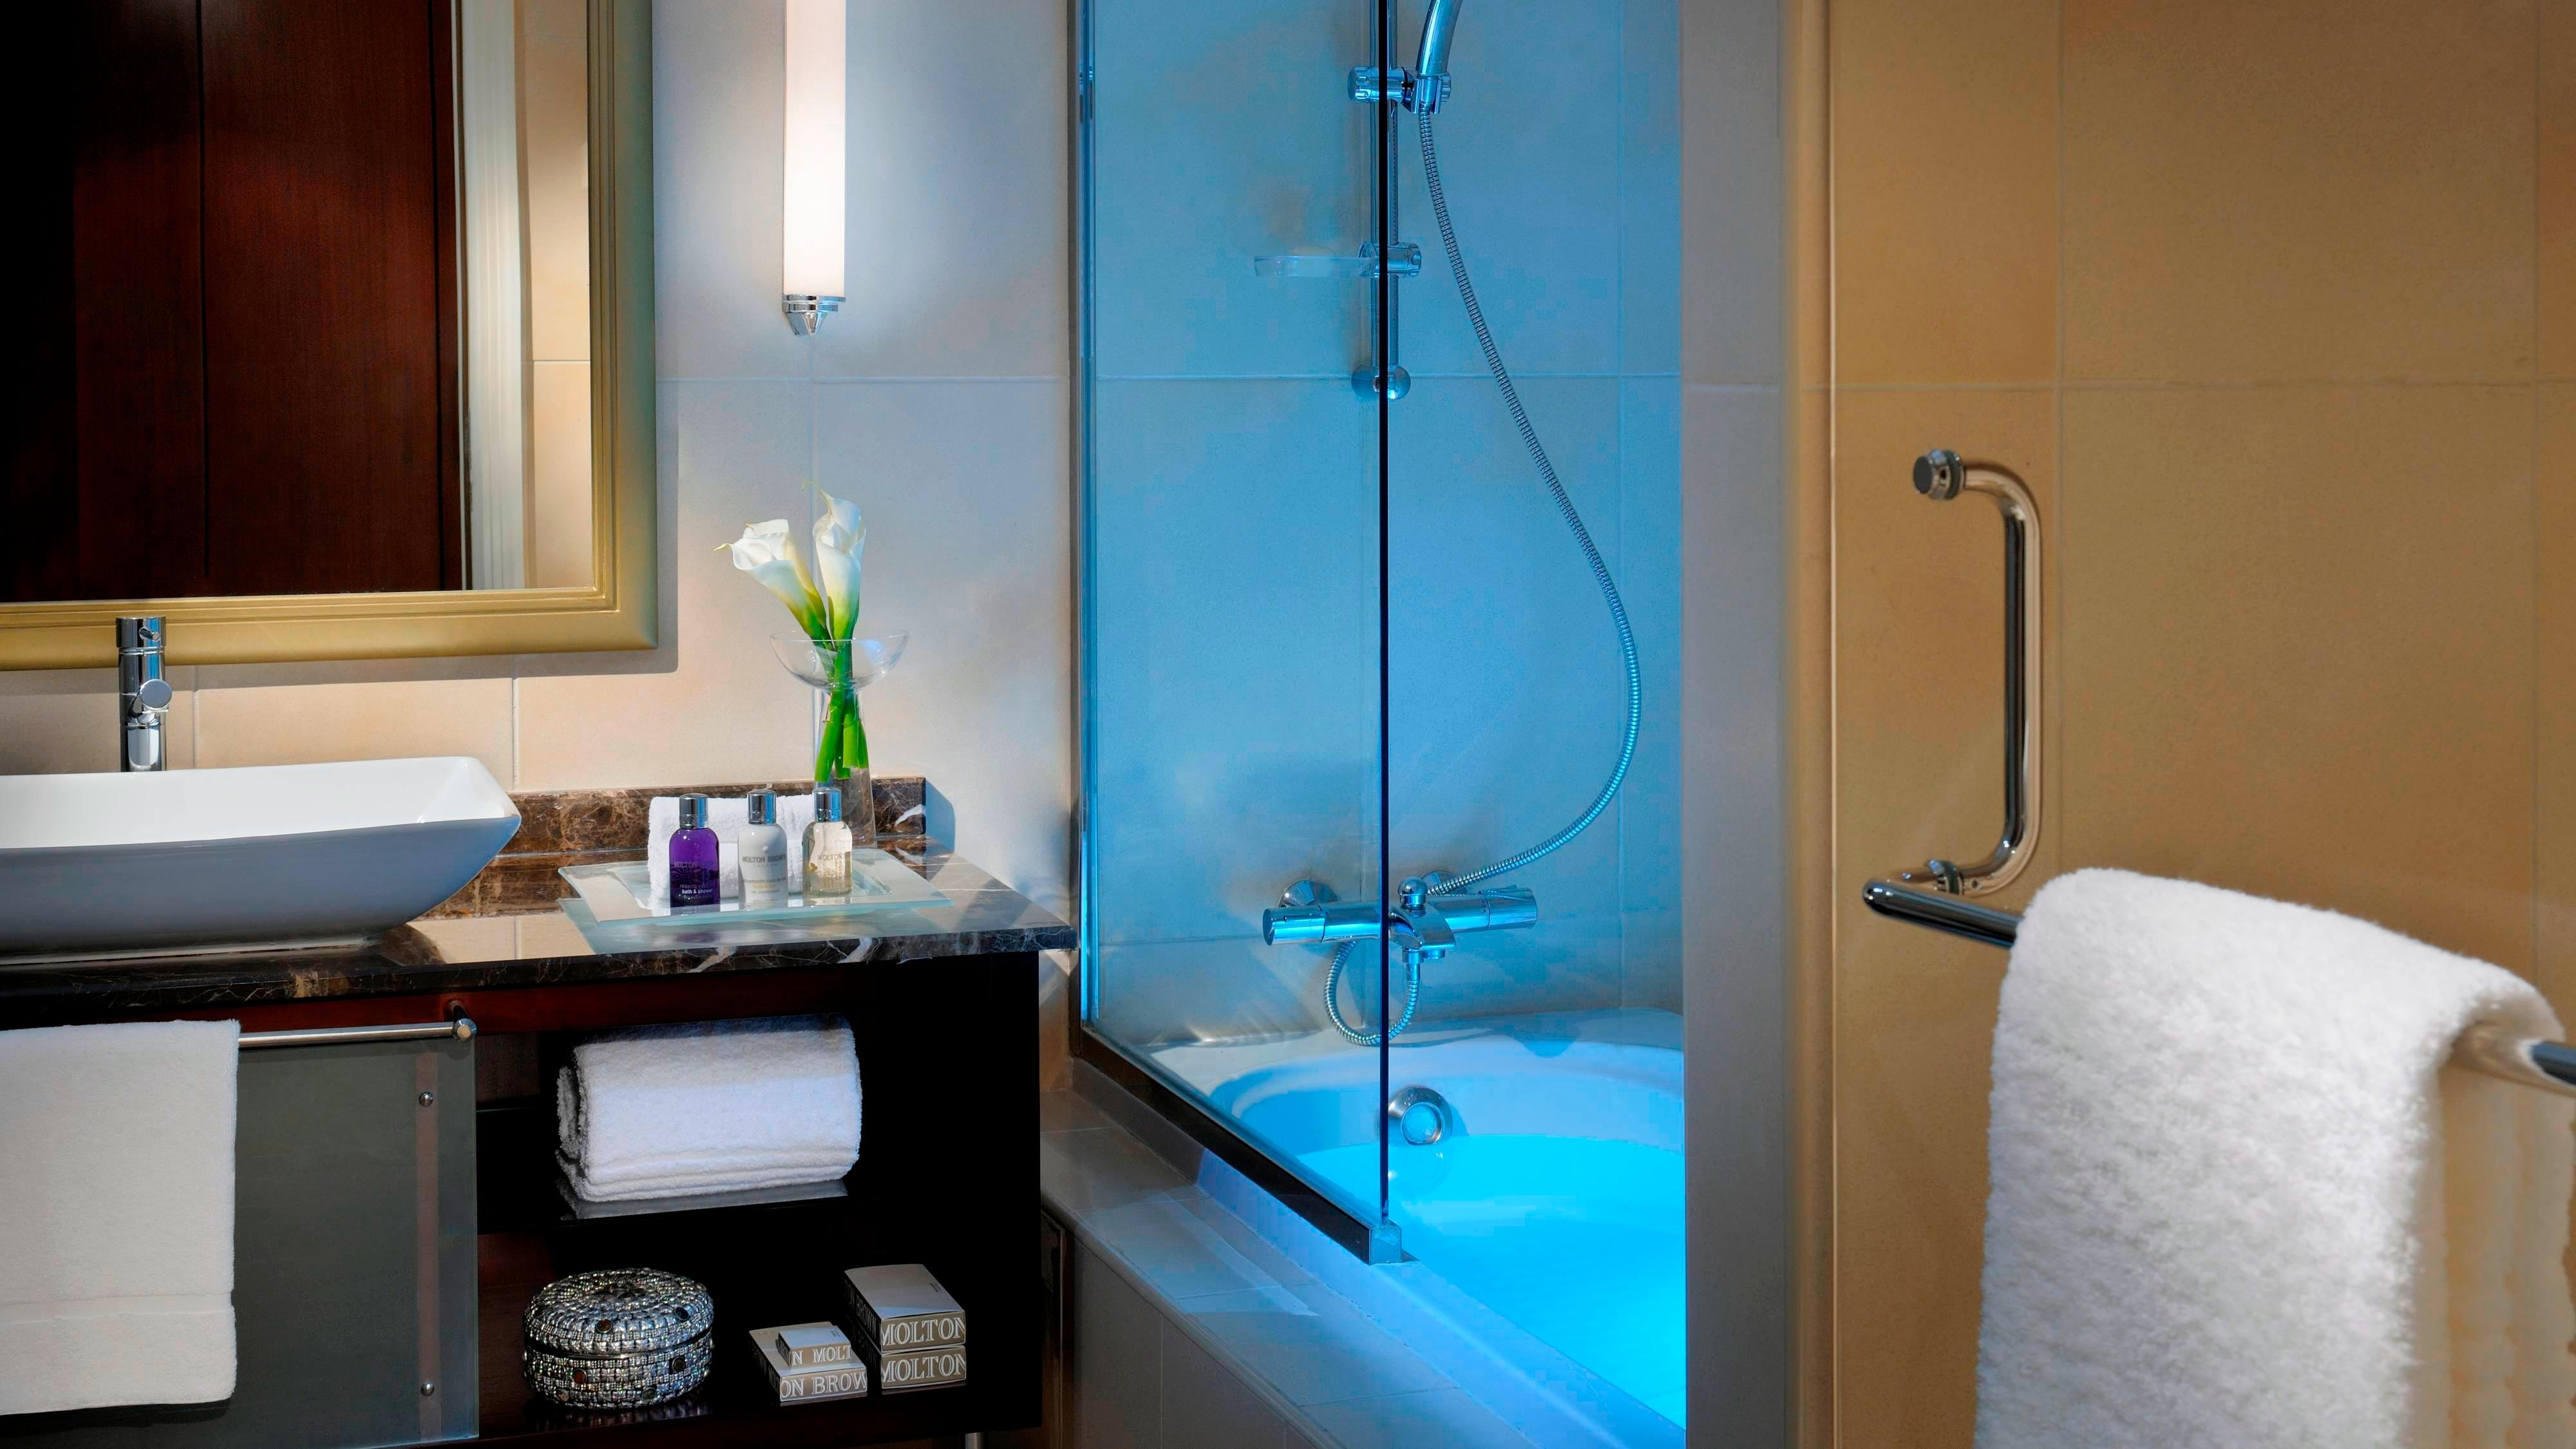 Hotel Residences Bahrain Bathroom